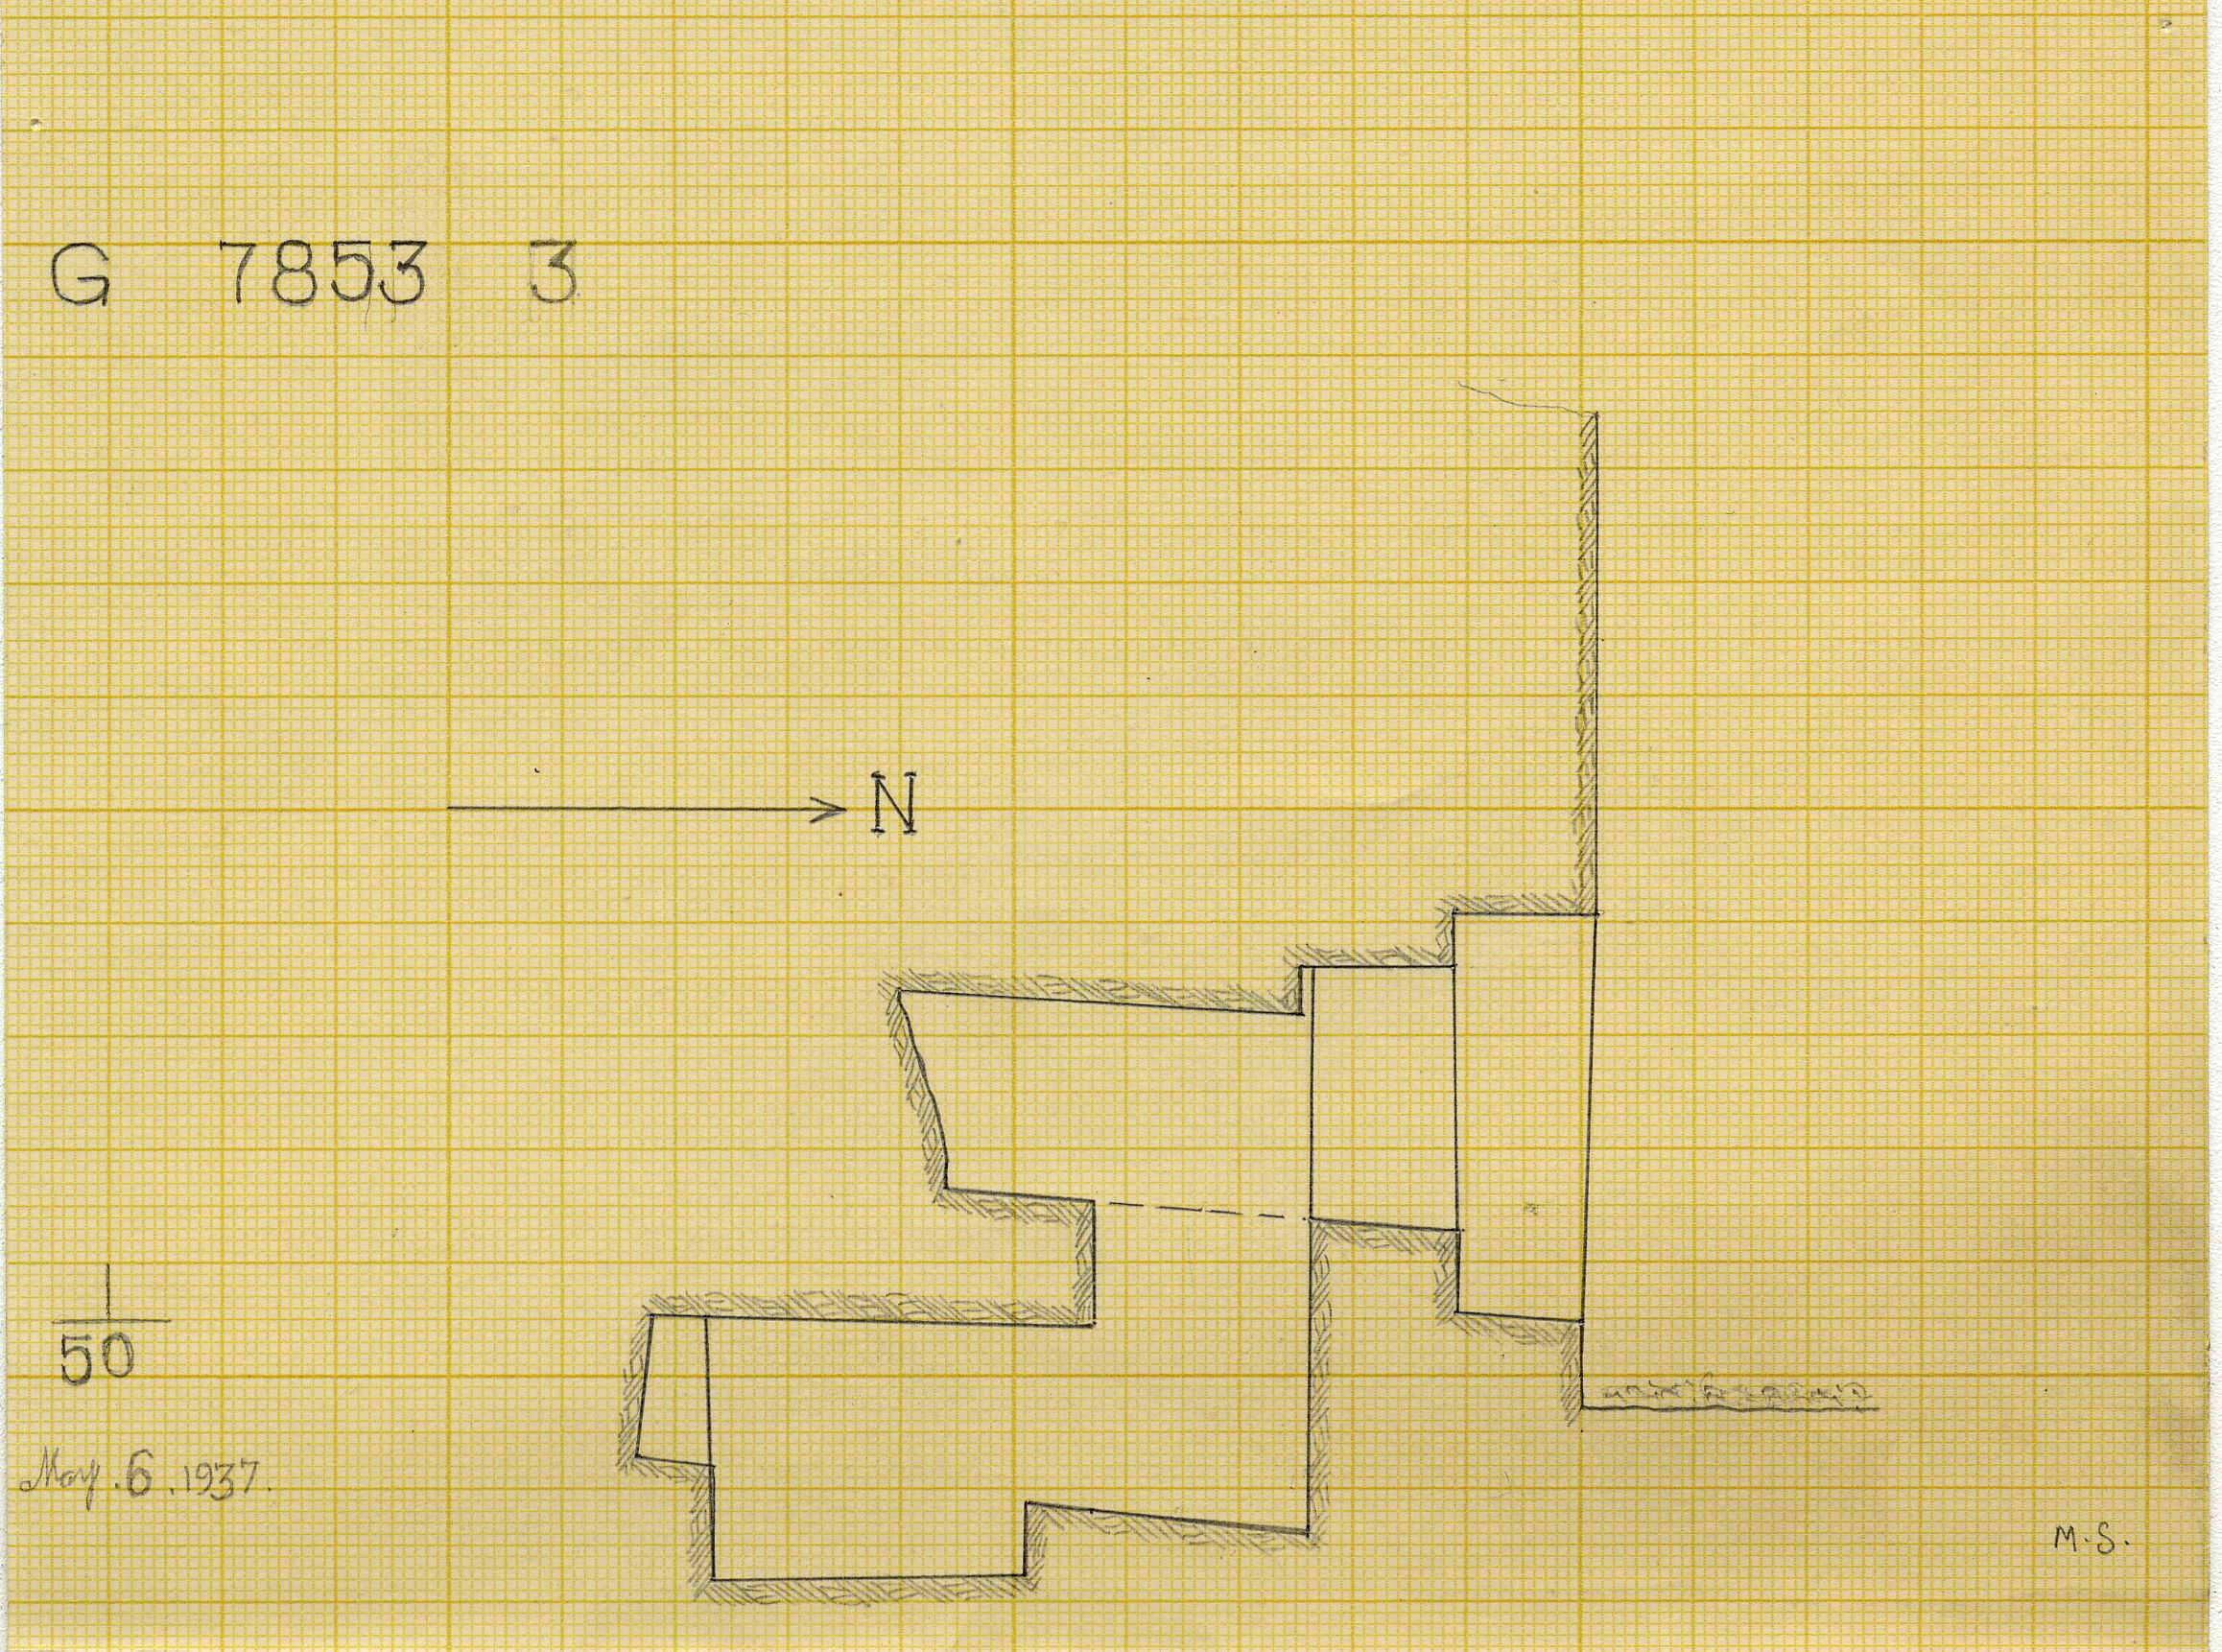 Maps and plans: G 7853